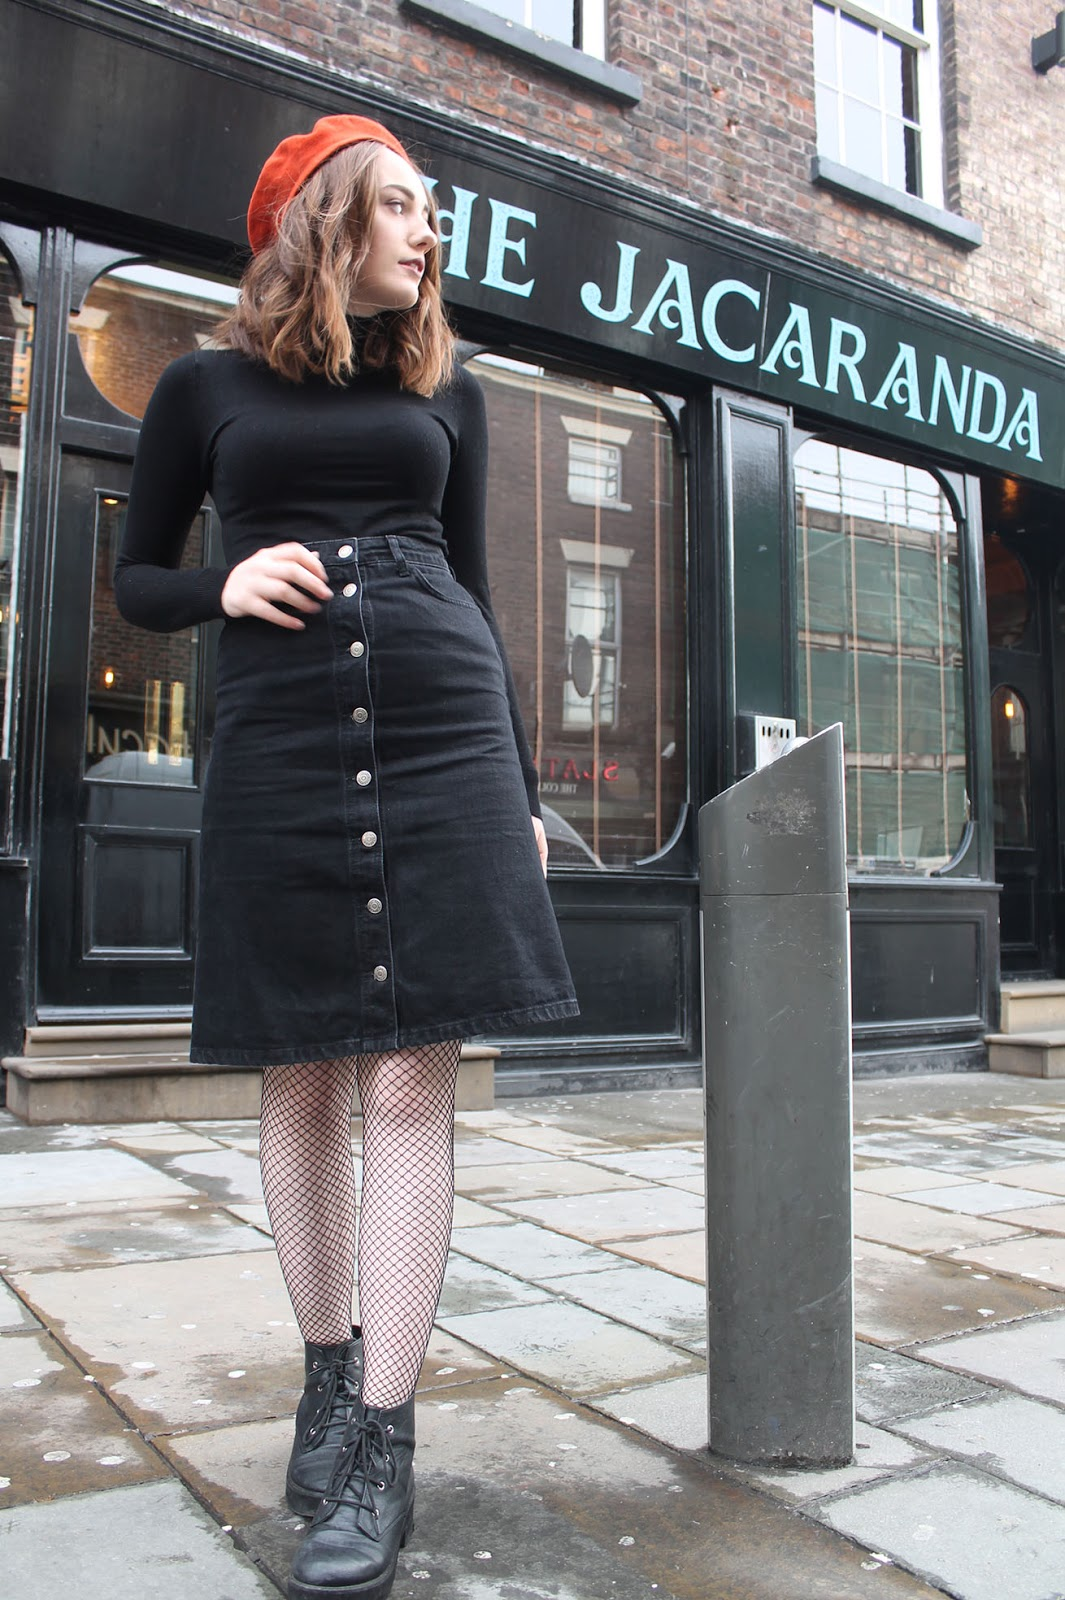 60s inspired outfit including orange Mary Quant beret, black polo neck jumper, black denim button up midi skirt, fishnet tights and black lace up boots